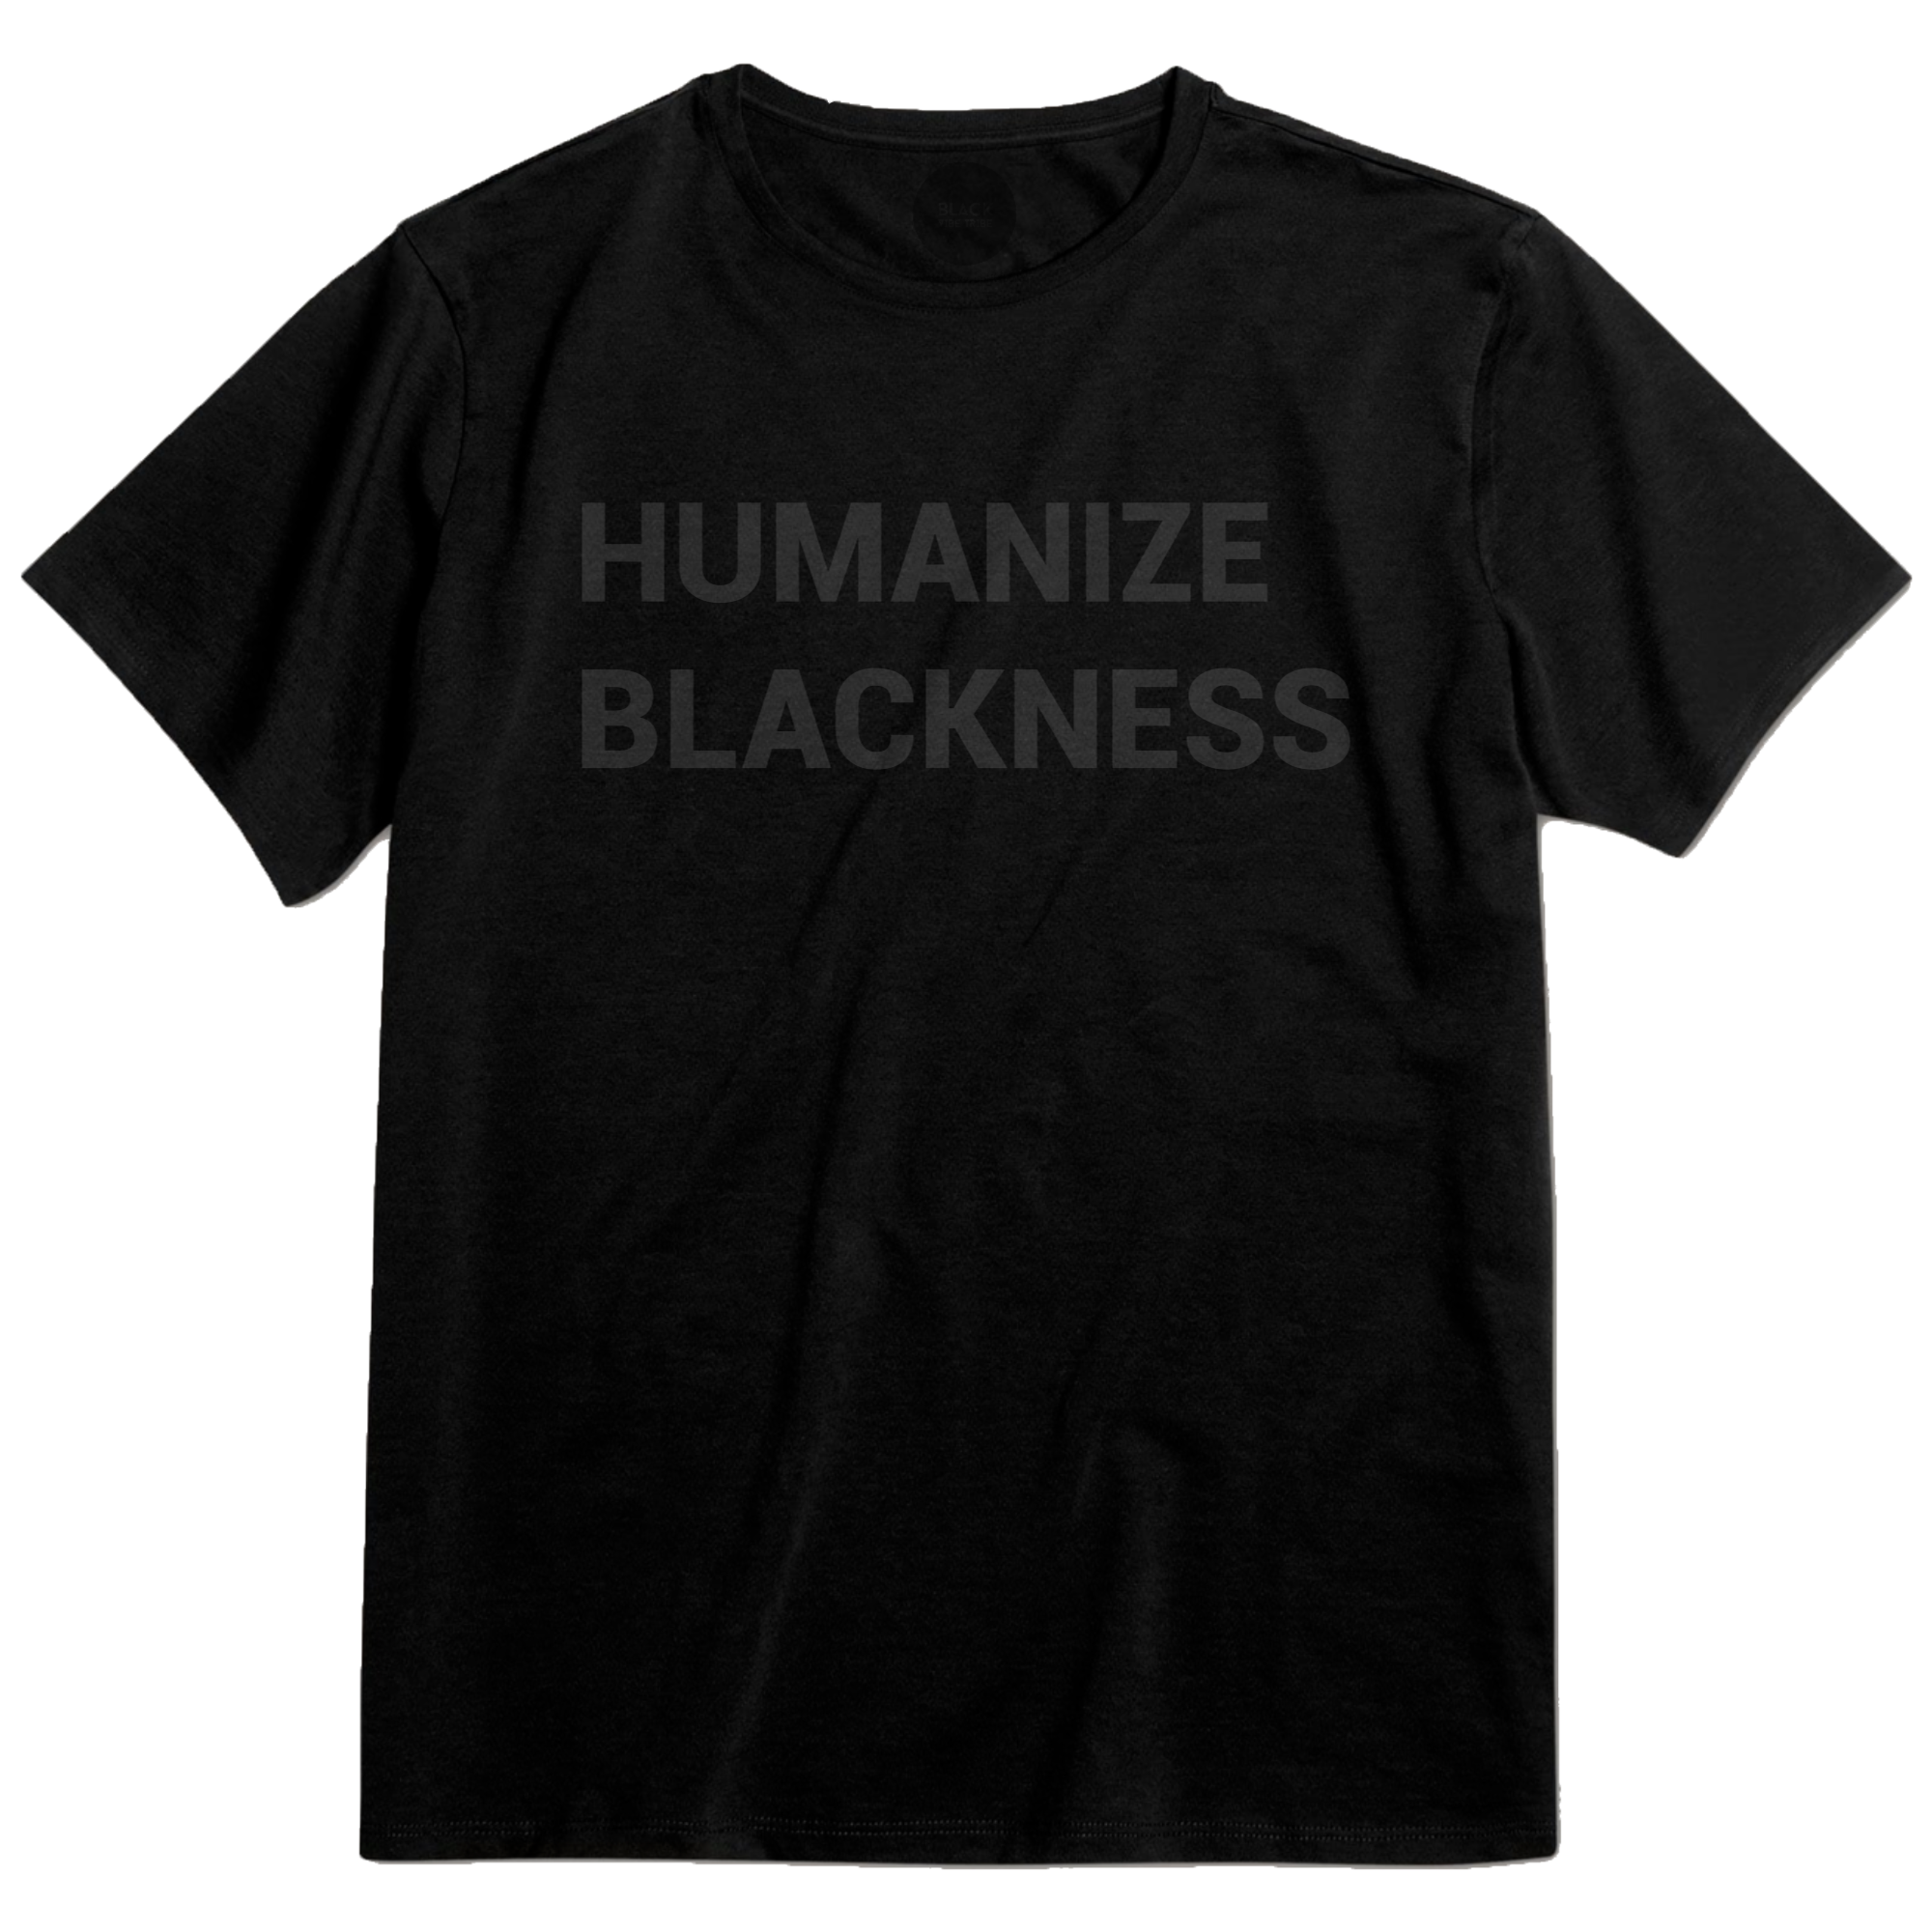 Humanize Blackness Men's Tee